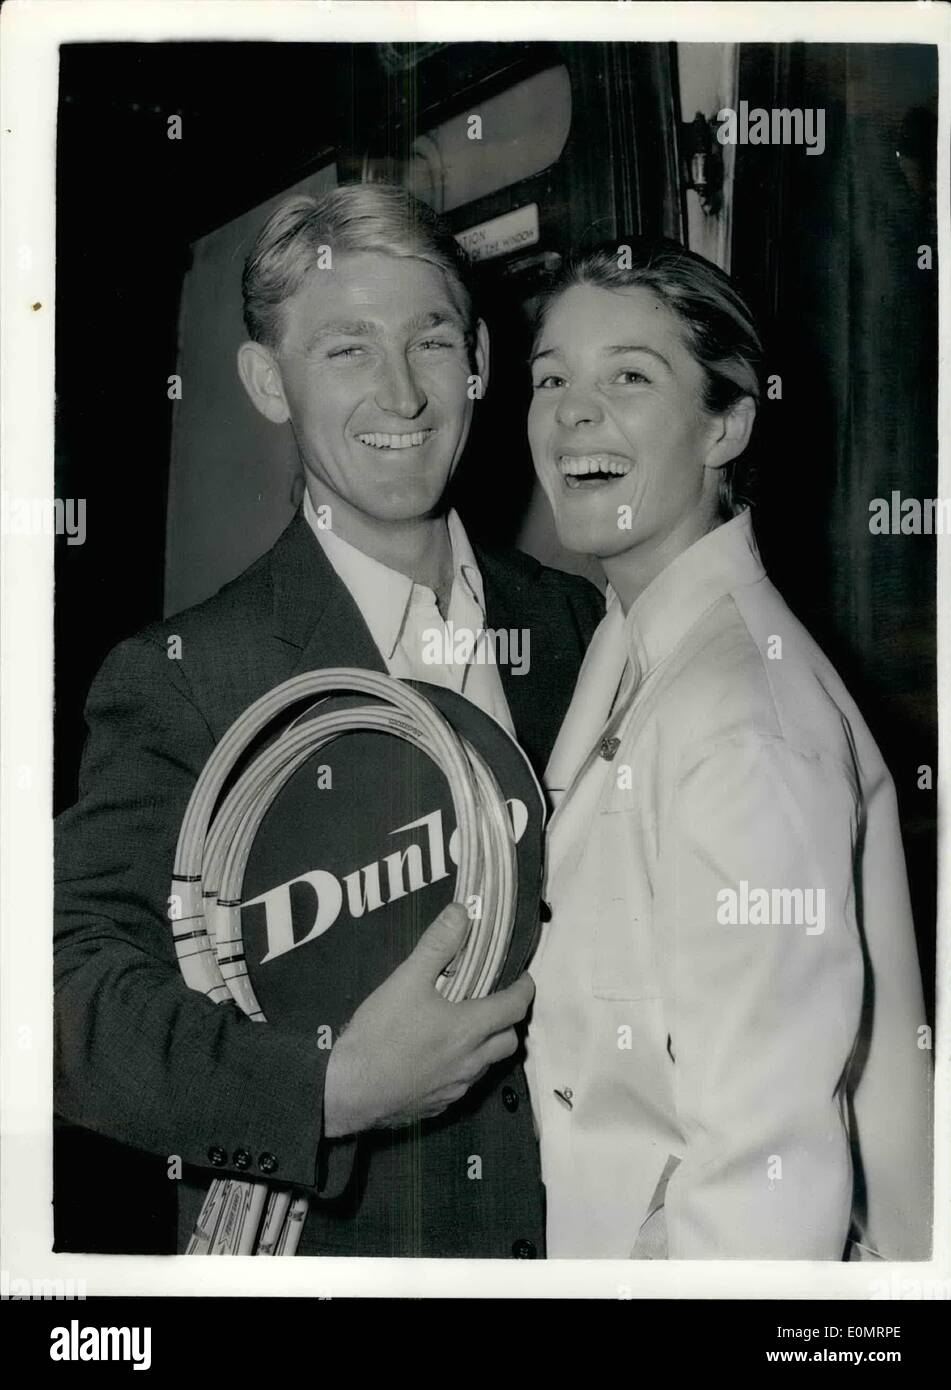 Aug. 08, 1956 - Australian tennis star leaves for the states. Wimbledon Champion for American Tournament.: Australia tennis star Lew Hoad - winner of the Singles Championship at Wimbledon - left Waterloo this afternoon for the United States to take part in the American championships. he was accompanied by his wife. Photo shows Mr. and Mrs. Lew Hoad at Waterloo station this afternoon. - Stock Image